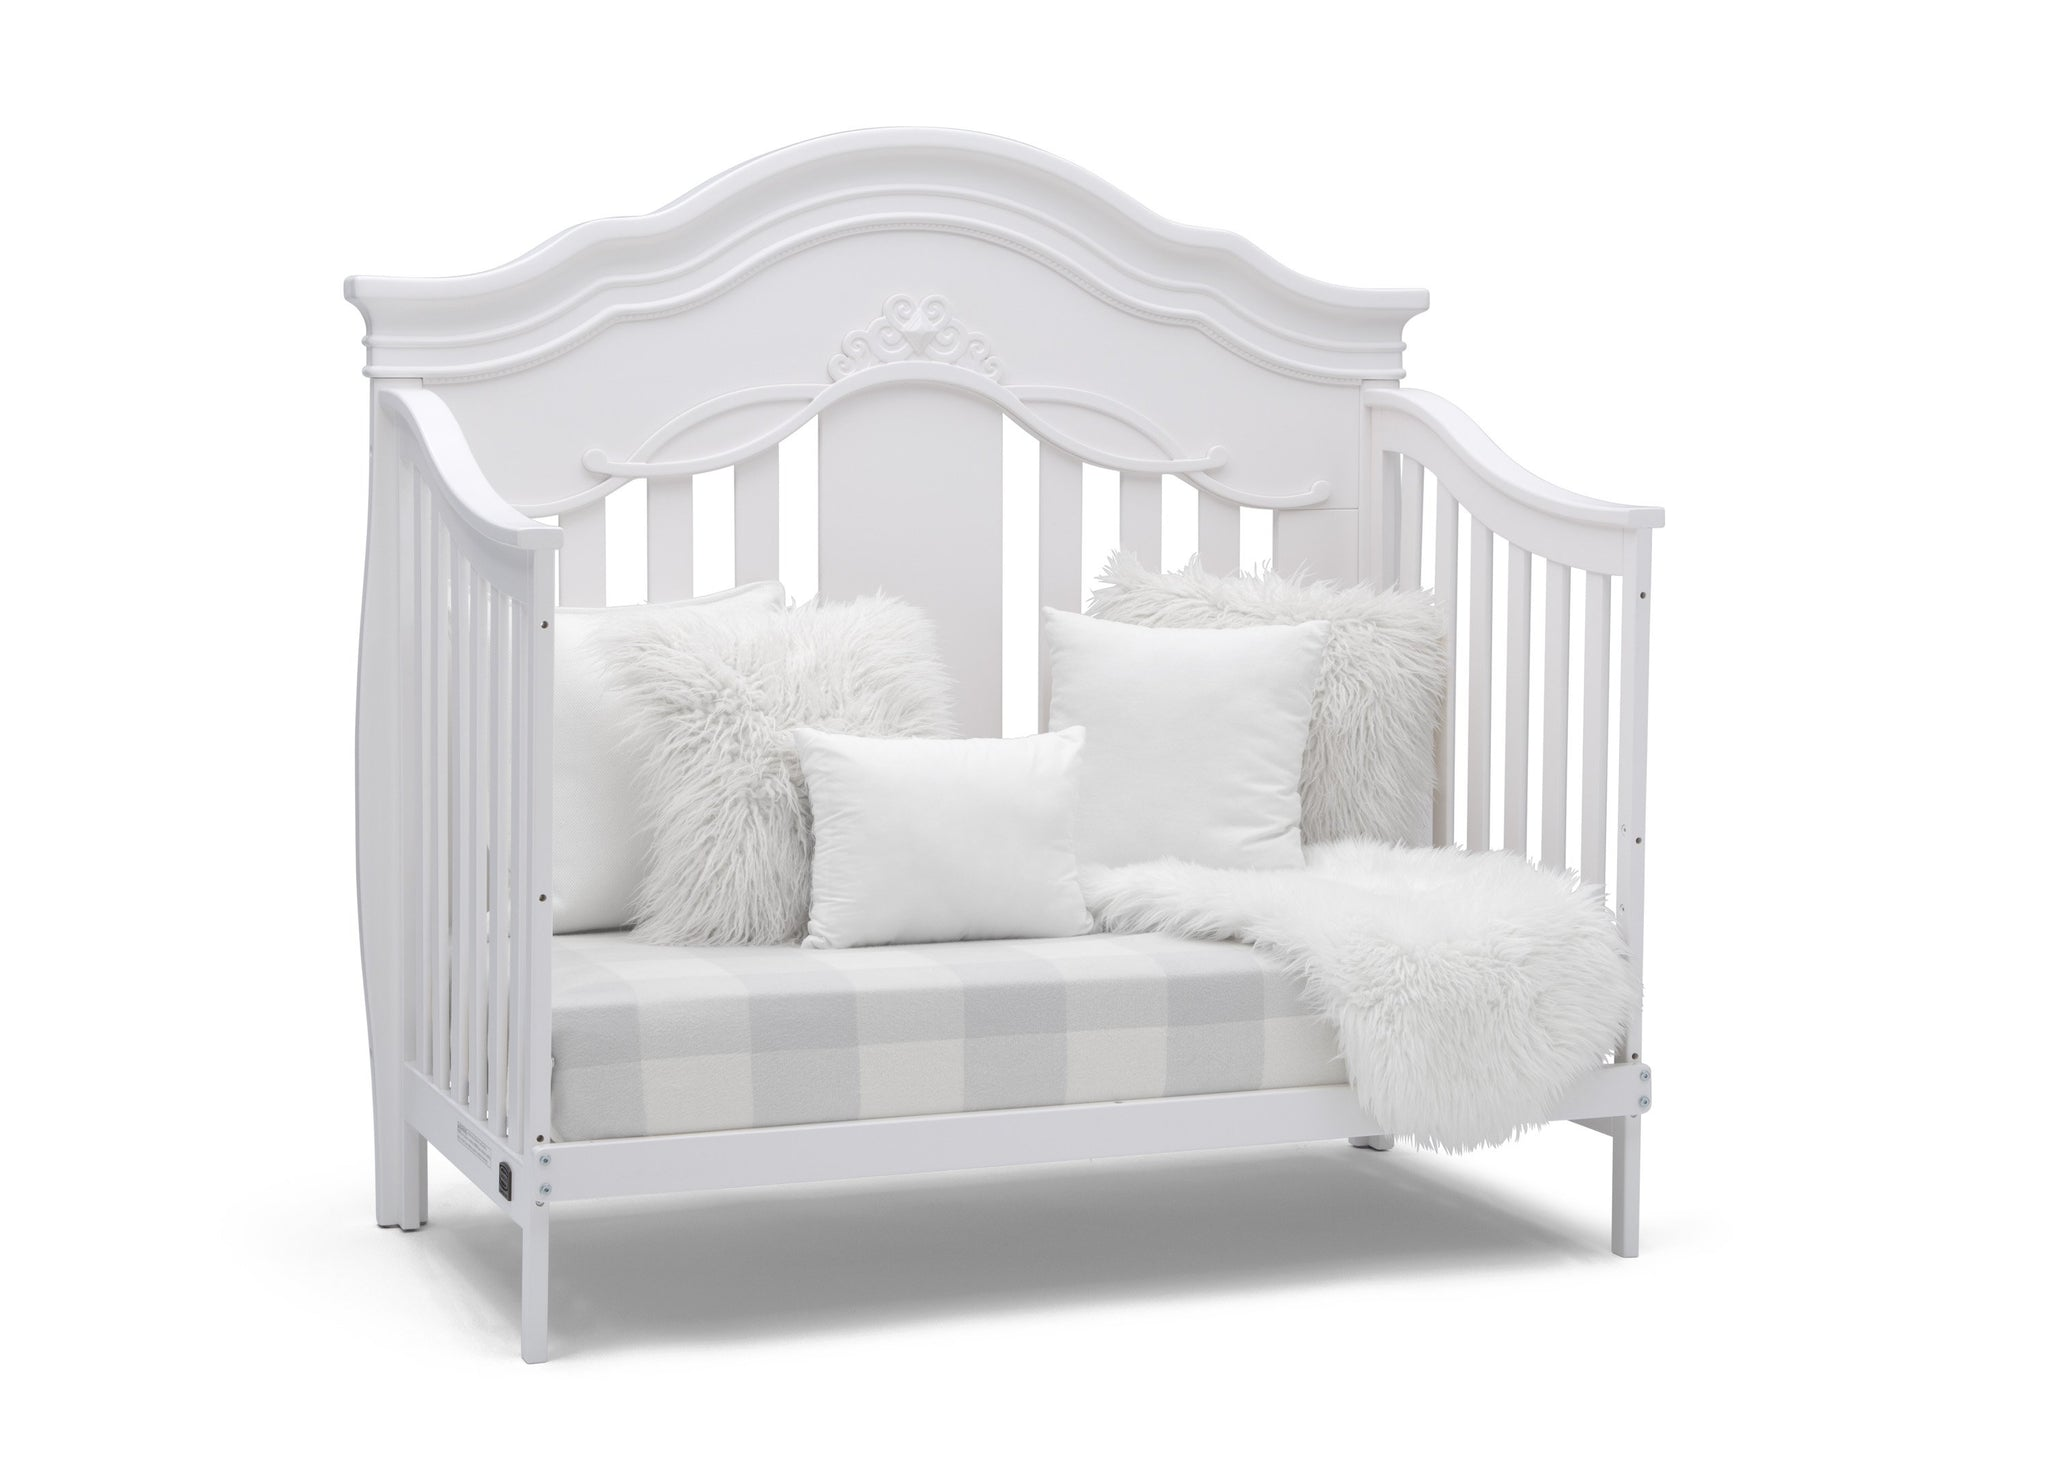 Simmons Kids Bianca White (130) Fairytale 5-in-1 Convertible Crib with Conversion Rails, Right Sofa Silo View